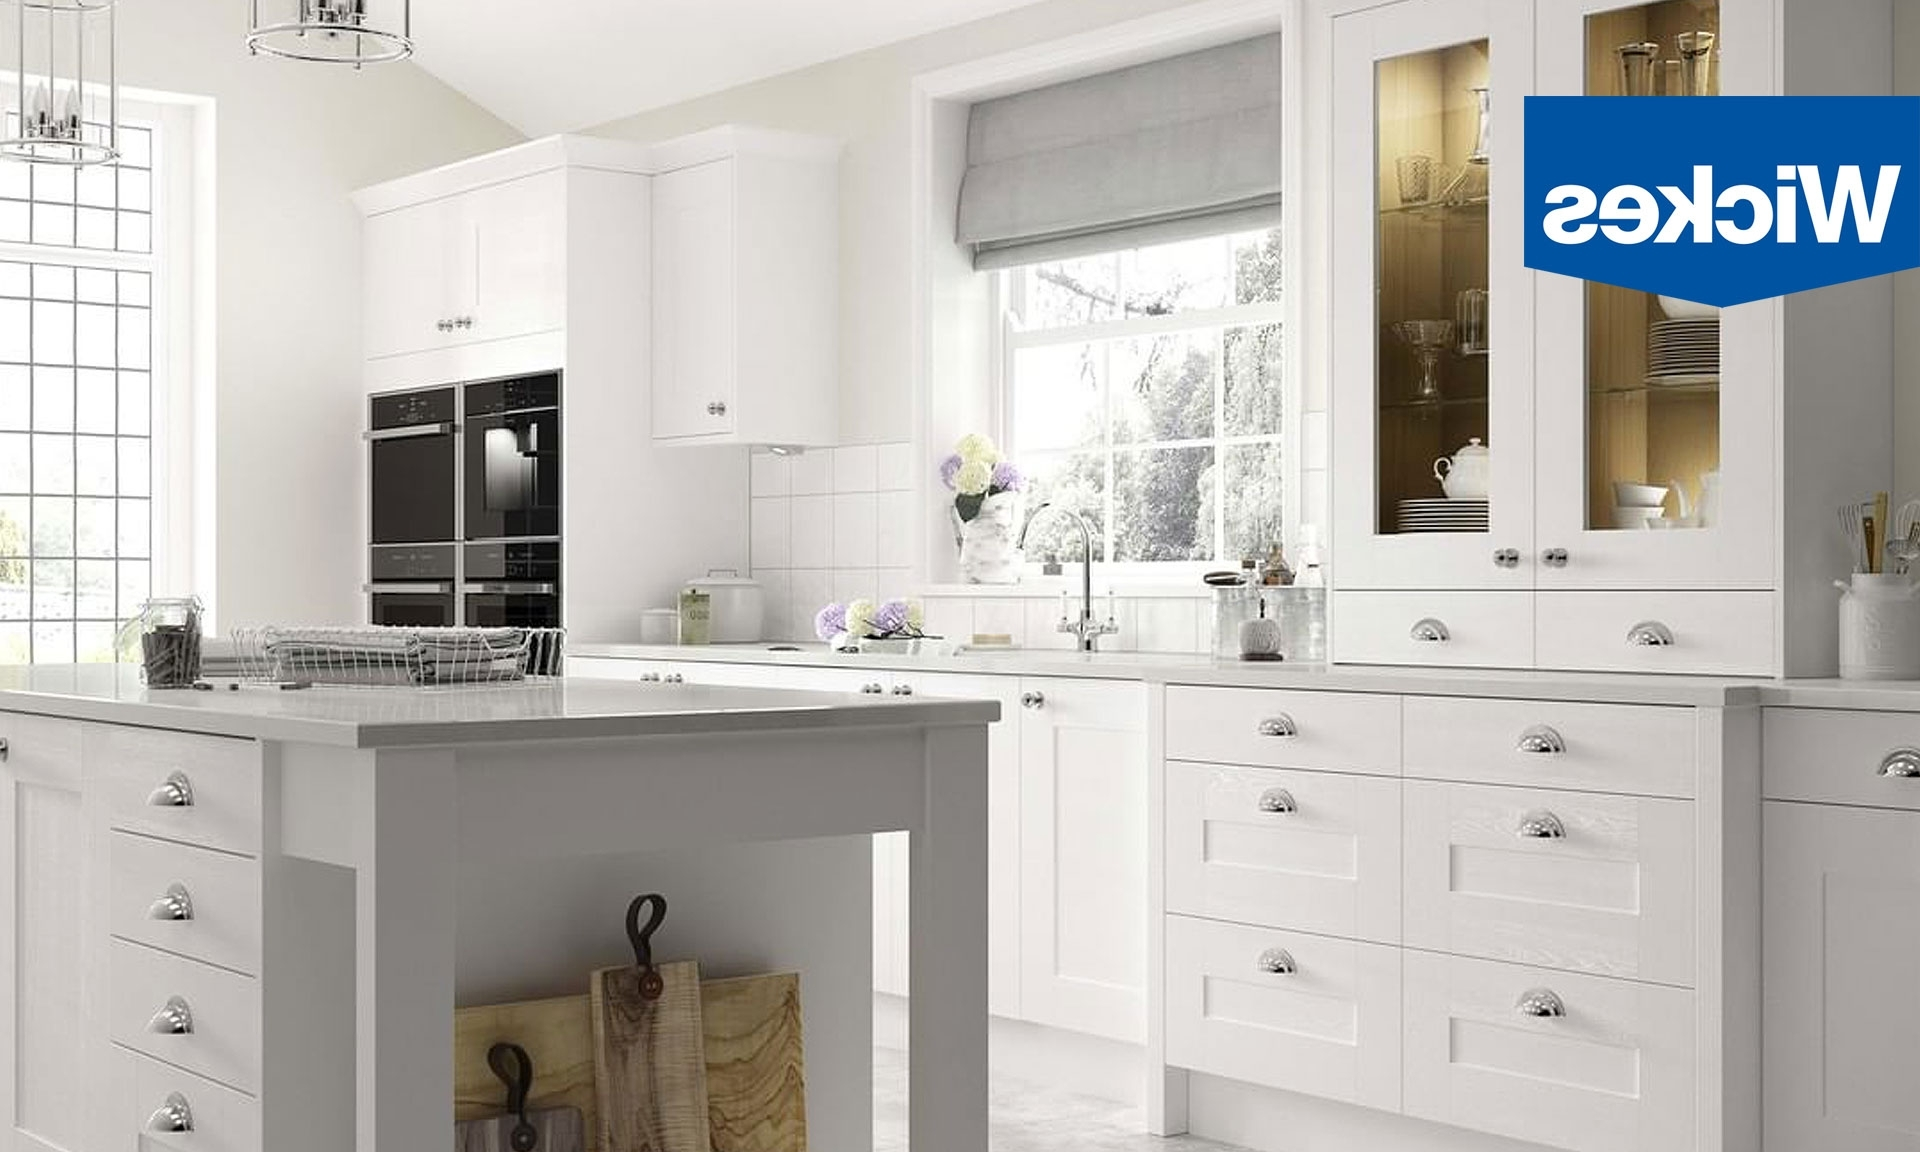 Which? Complaint Against Wickes Kitchens Upheldasa Wickes Bathroom Design